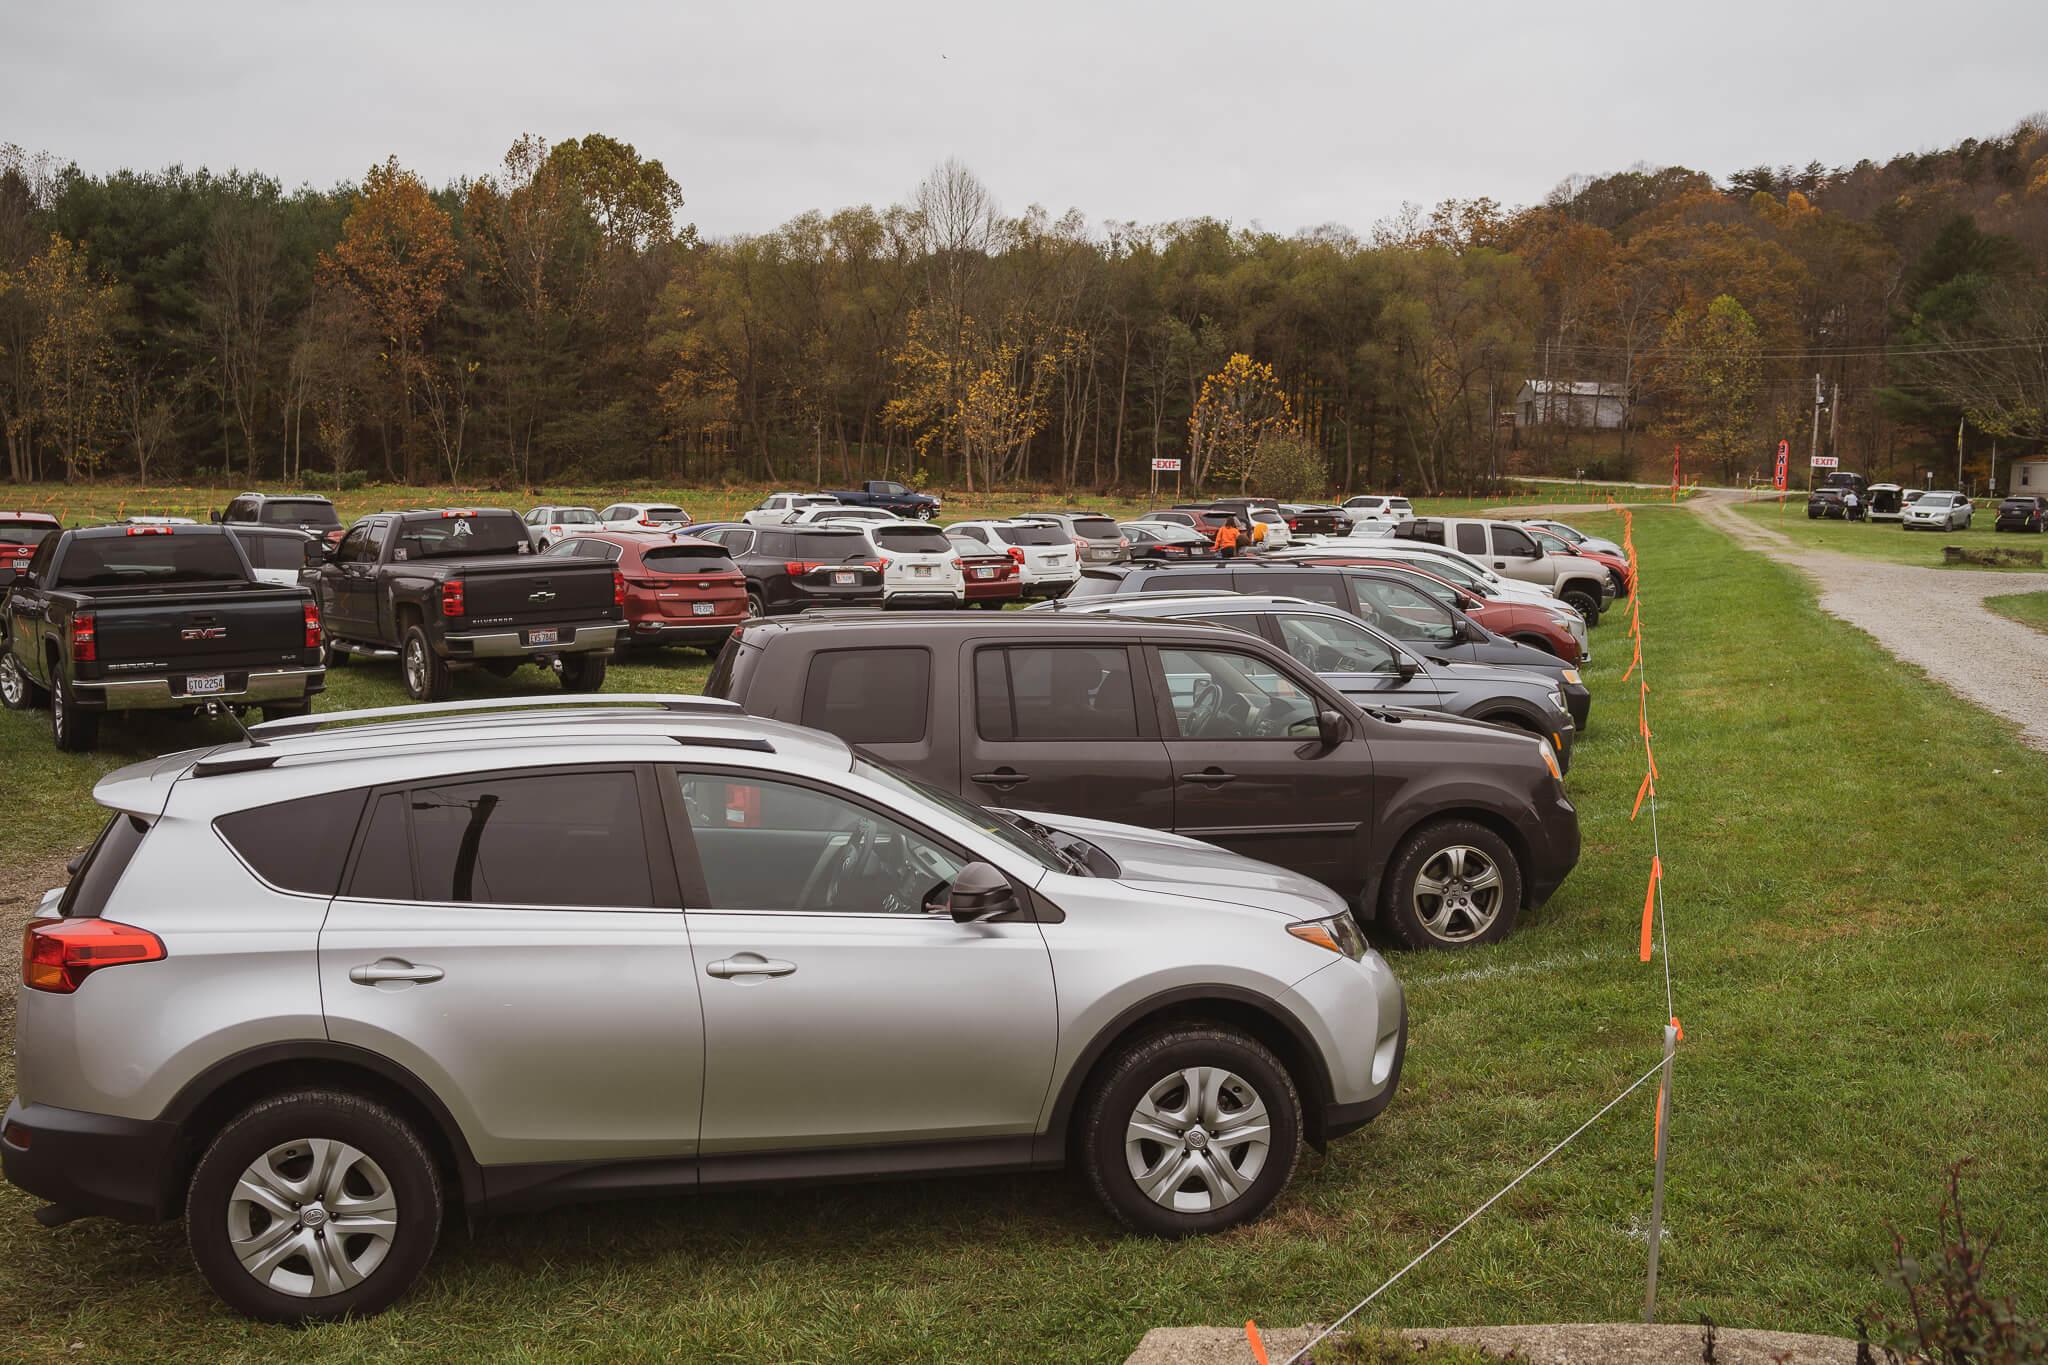 View of the parking area at the Glass Pumpkin Festival